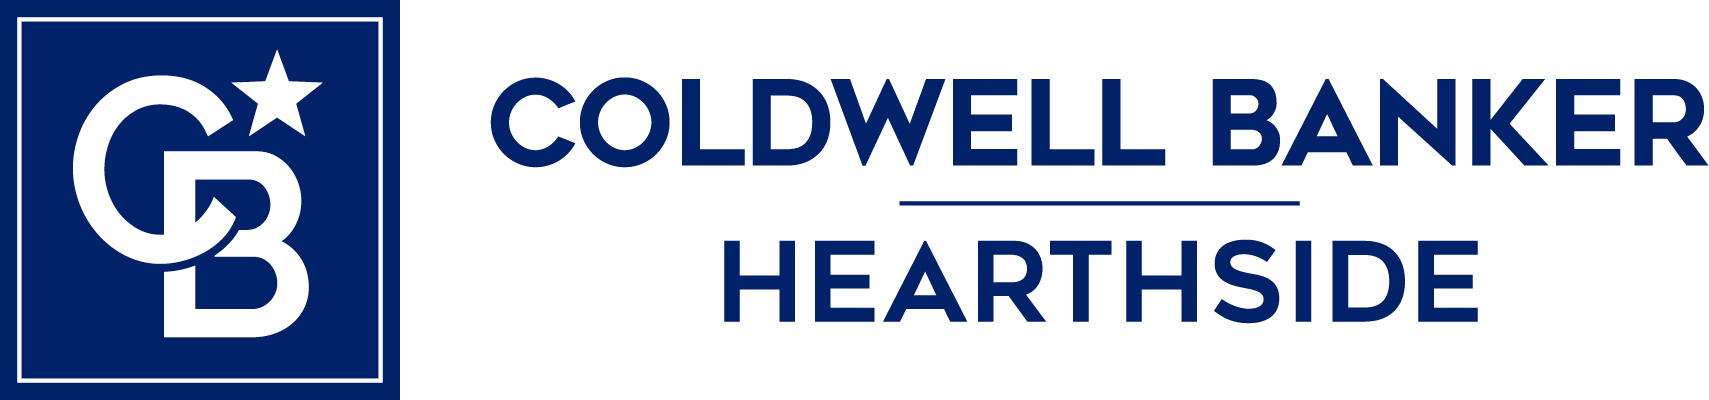 Stephen Hadfield - Coldwell Banker Hearthside